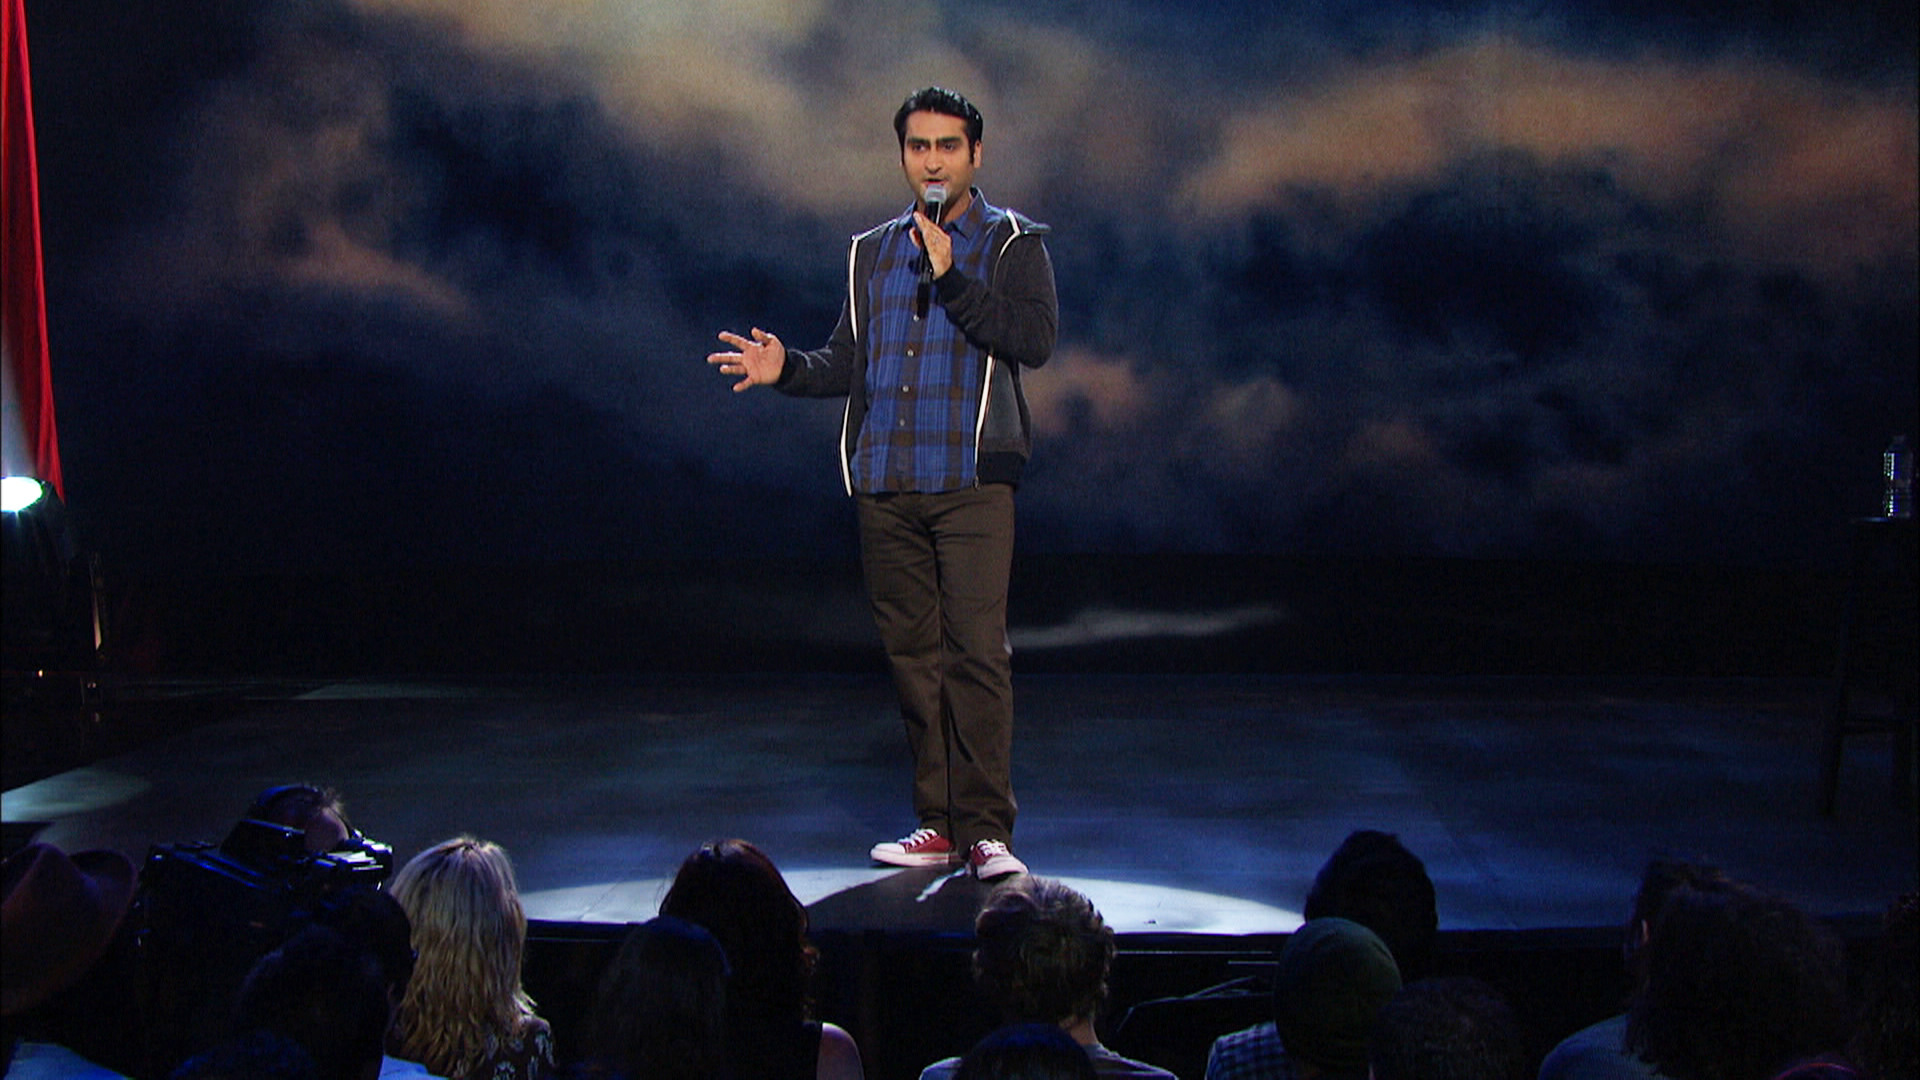 Uncensored - Kumail Nanjiani - Too Young for Porn Pt. 2